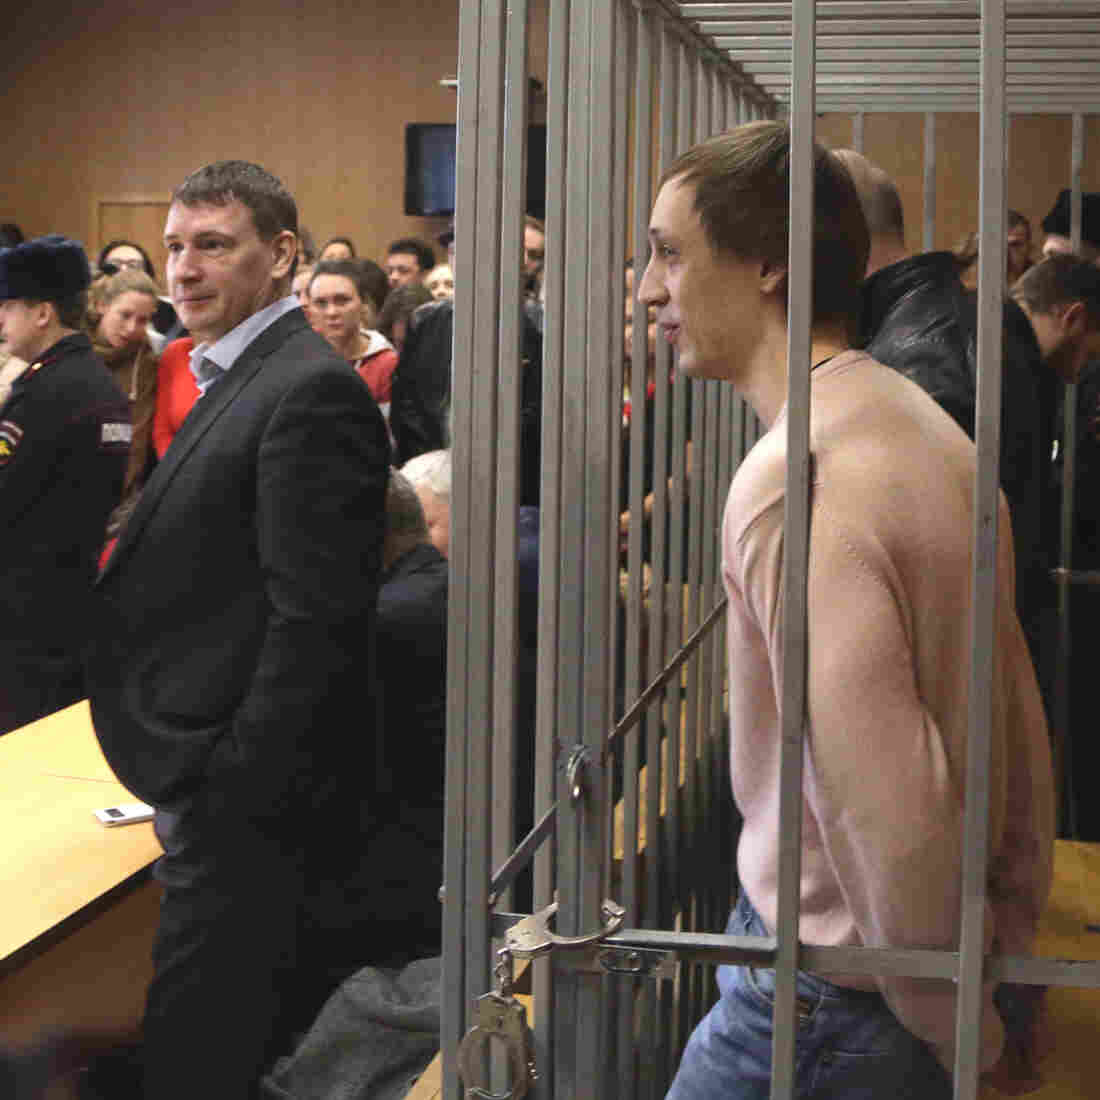 Pavel Dmitrichenko, a former leading dancer in Russia's Bolshoi ballet, stands inside the defendant's cage in a Moscow court Tuesday. He was sentenced to six years in prison for ordering an acid attack on the Bolshoi's artistic director, Sergei Filin.